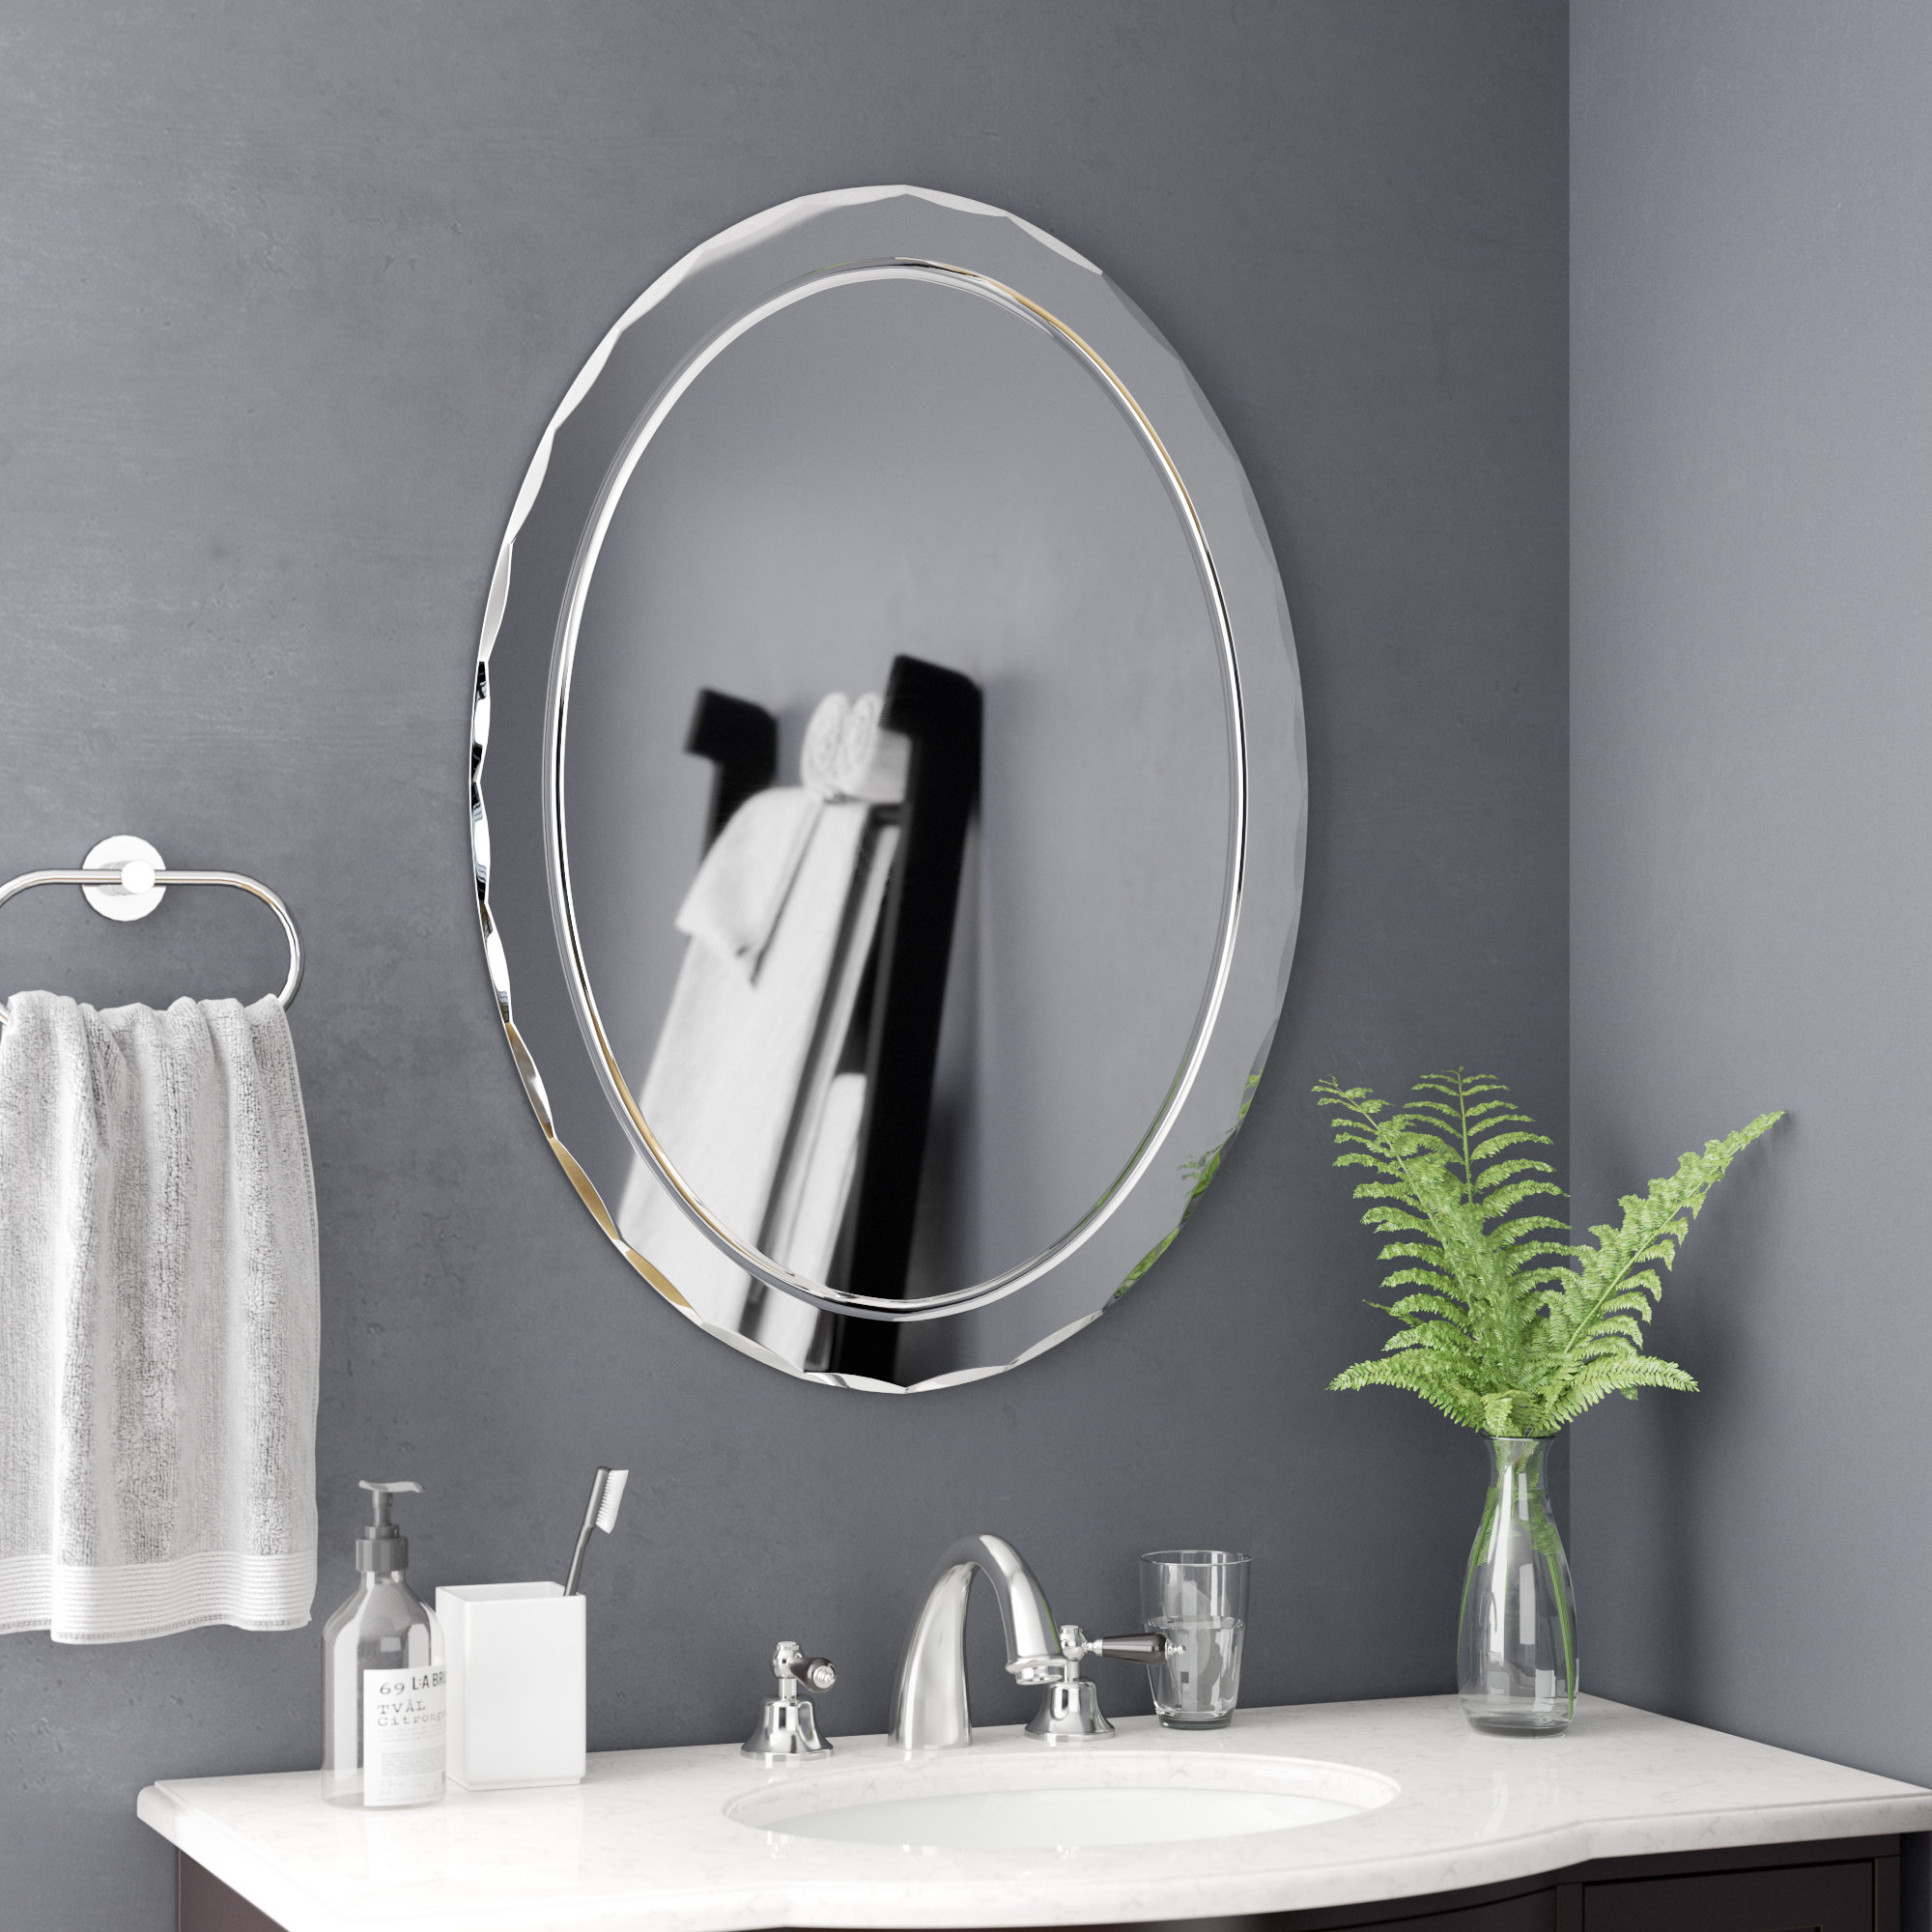 Etched Frameless Wall Mirror | Wayfair Intended For Wallingford Large Frameless Wall Mirrors (View 7 of 20)